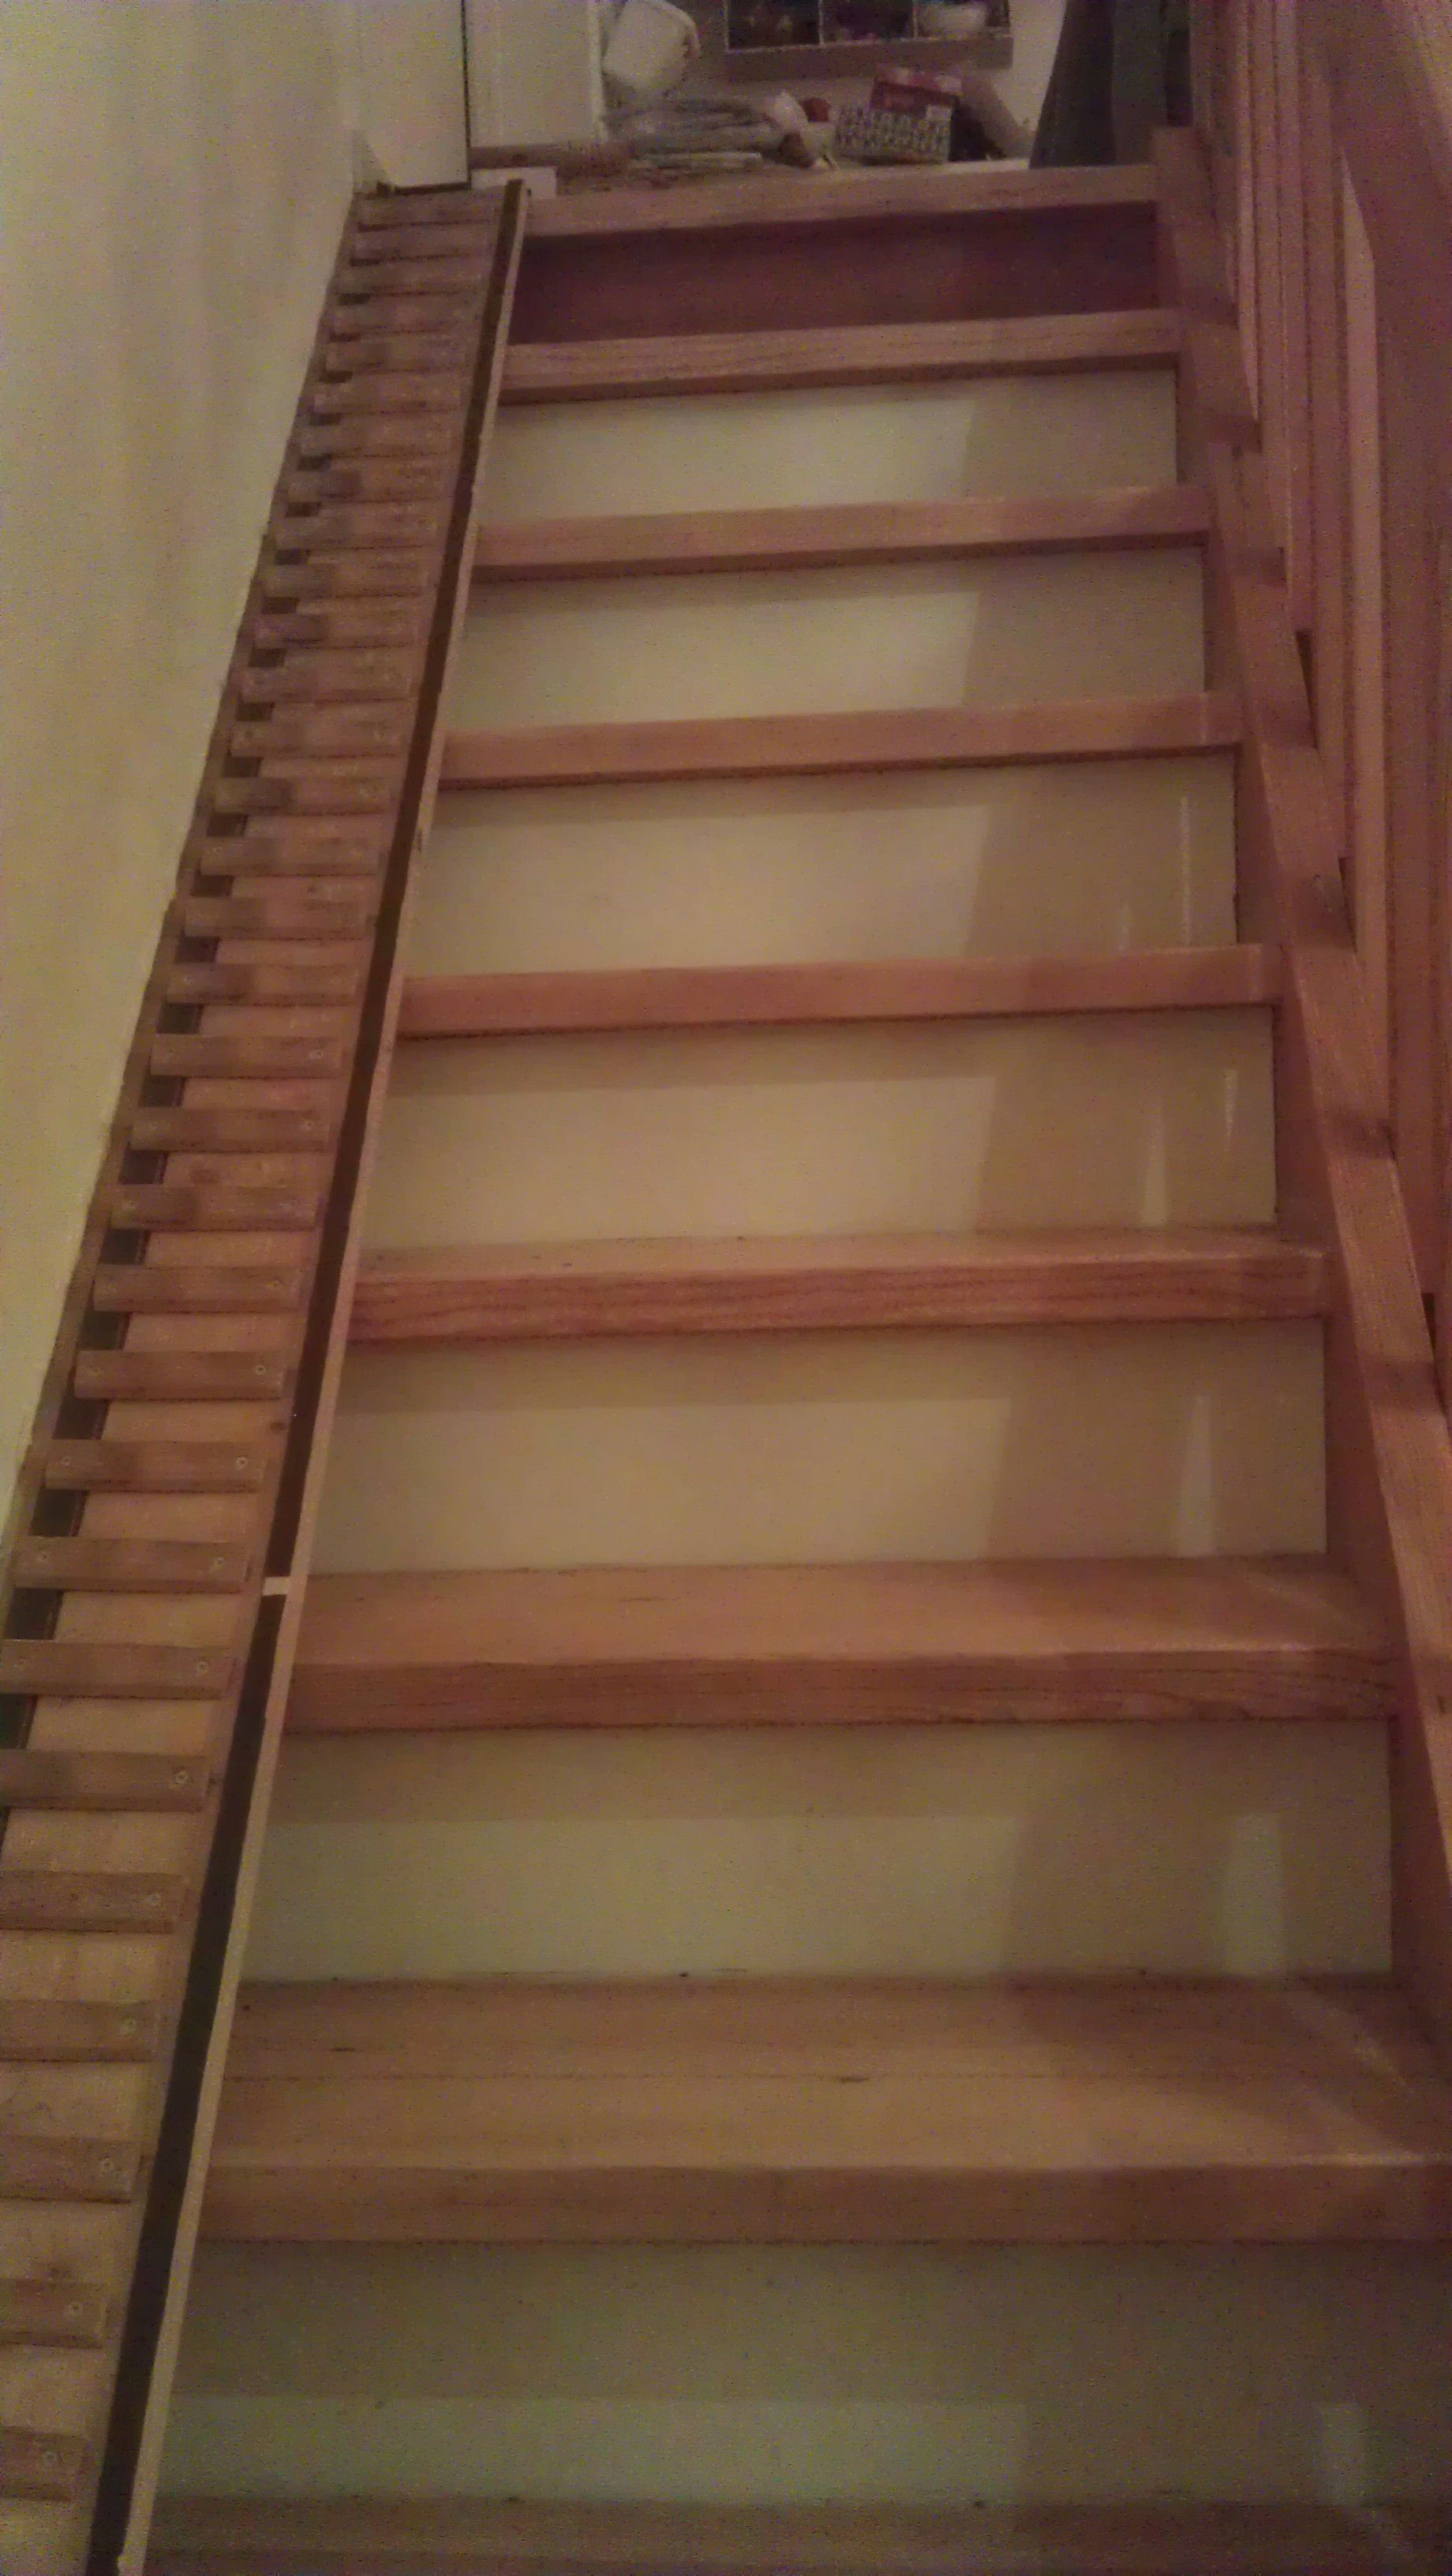 Homemade Stairs For Dachshunds On The Left Pet Care